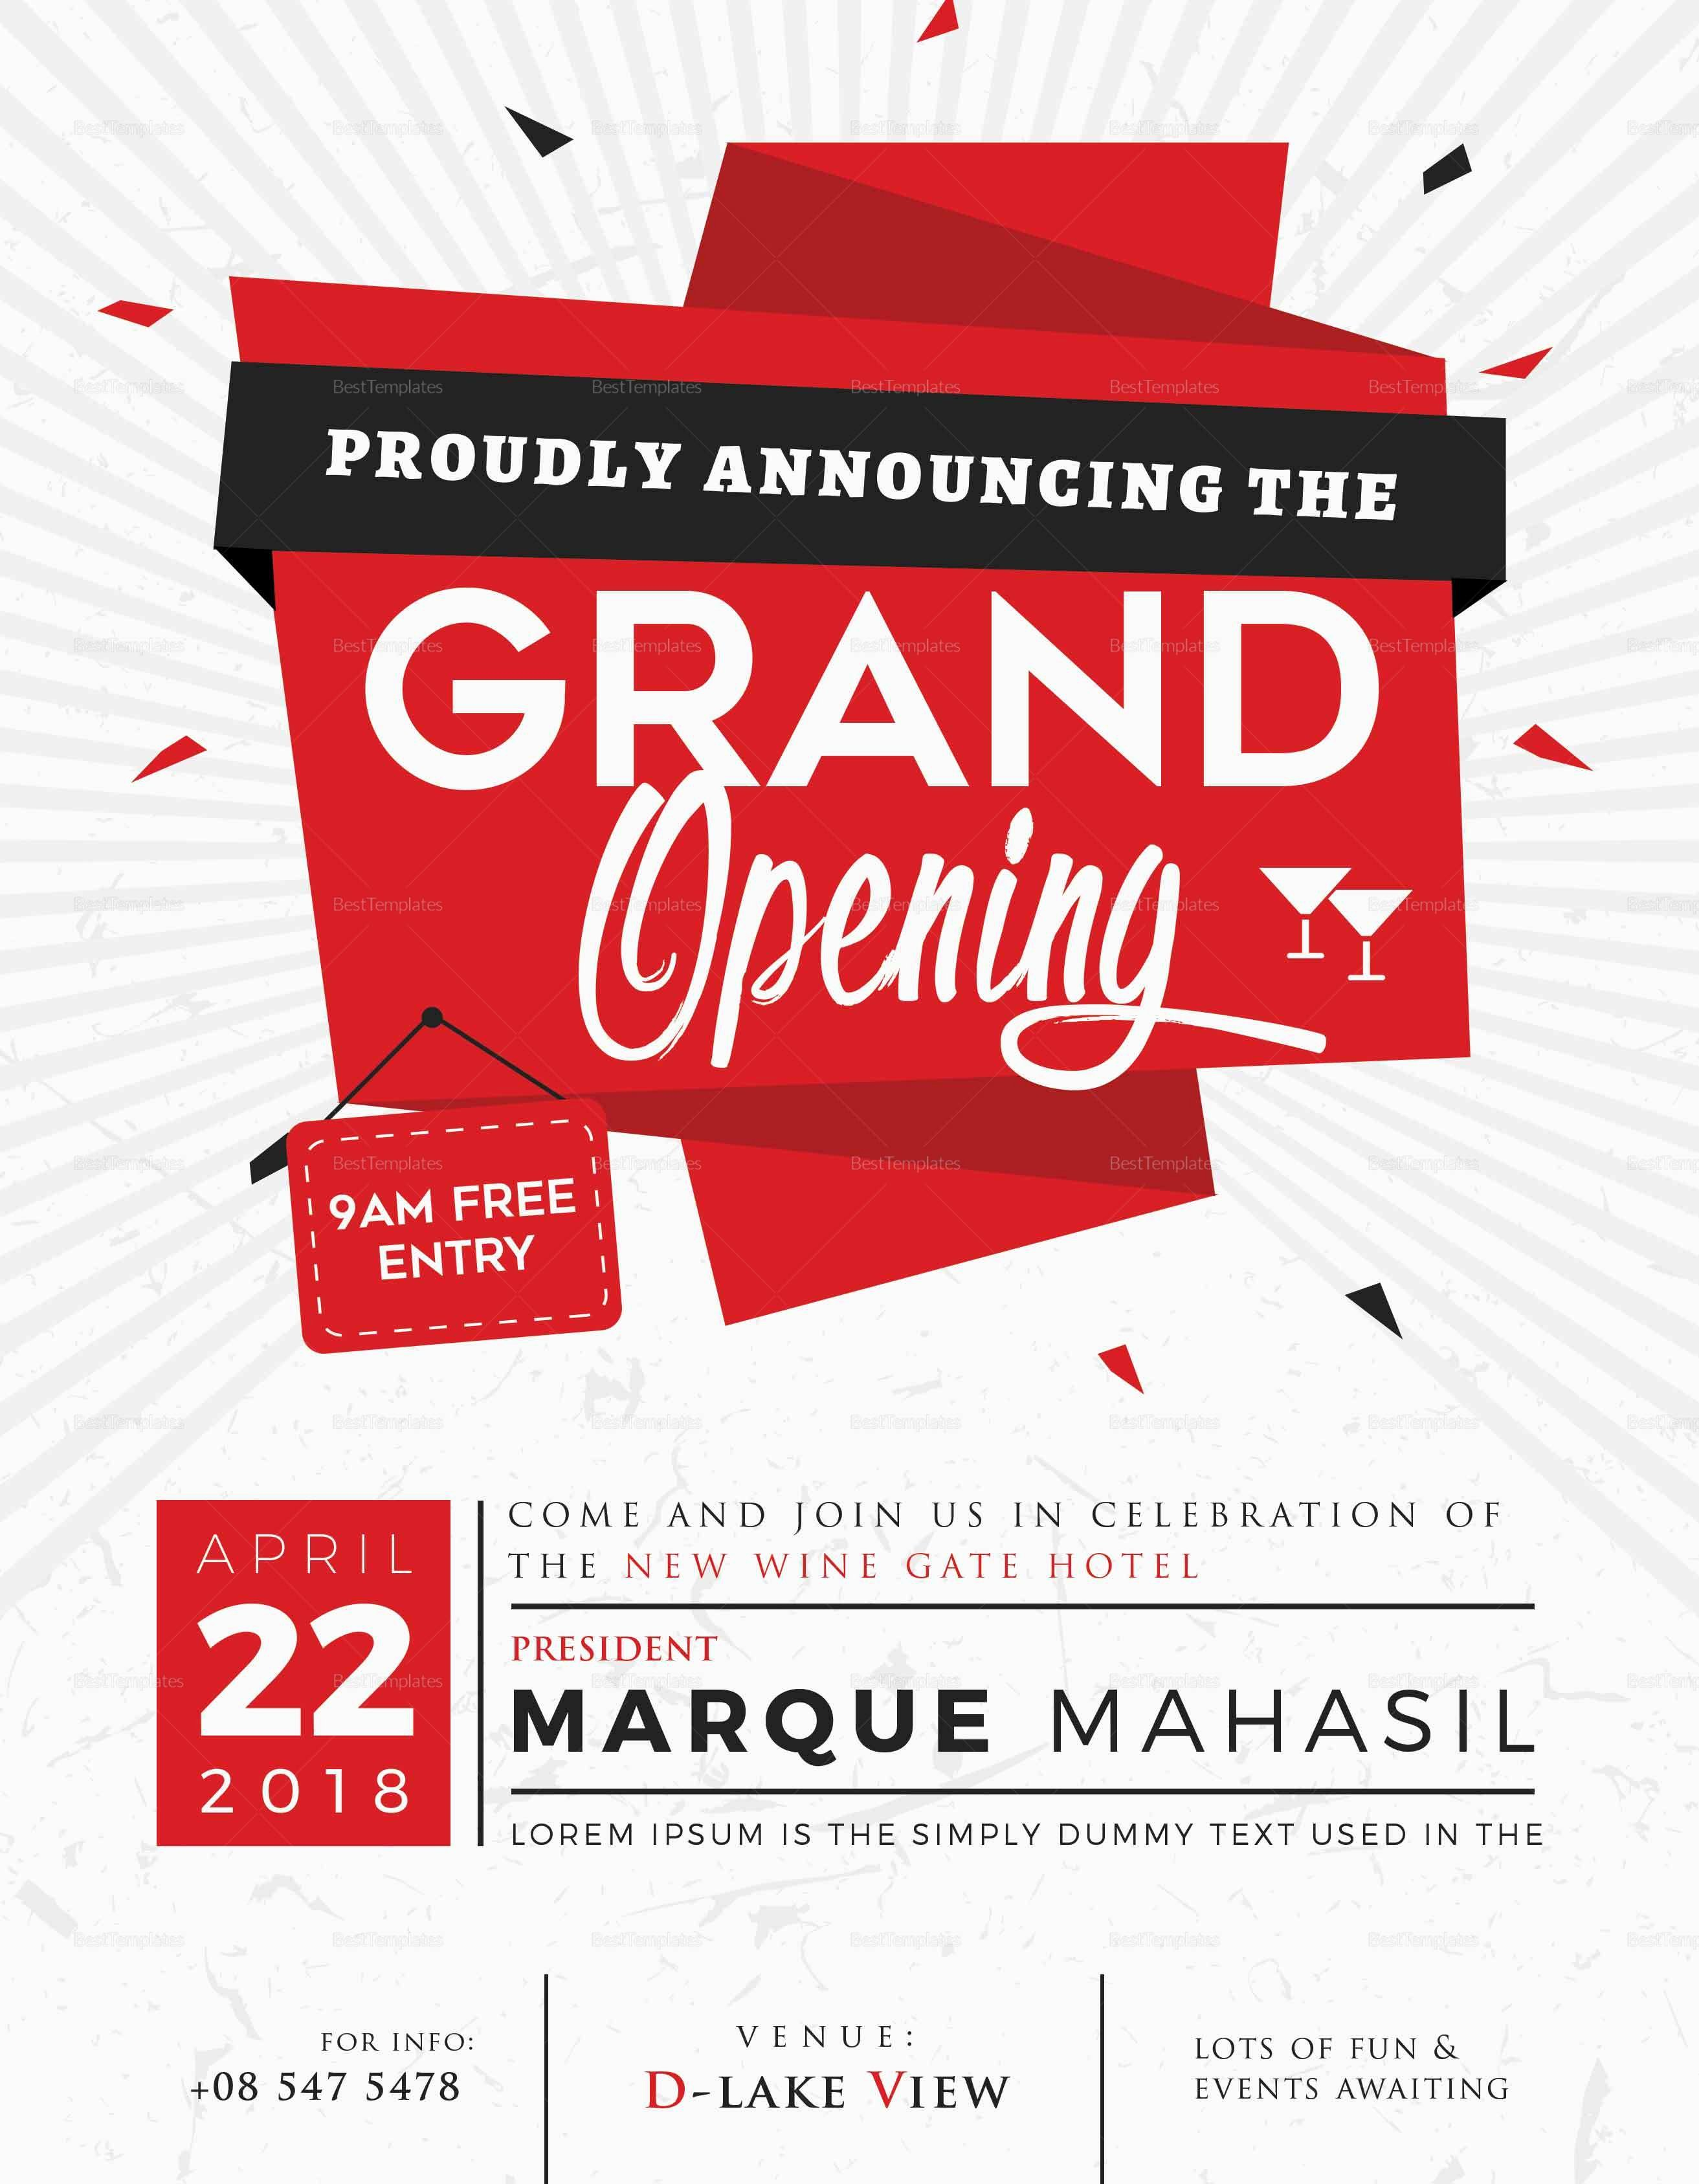 Grand Opening Flyer Template Beautiful Grand Opening Flyer Design Template In Word Psd